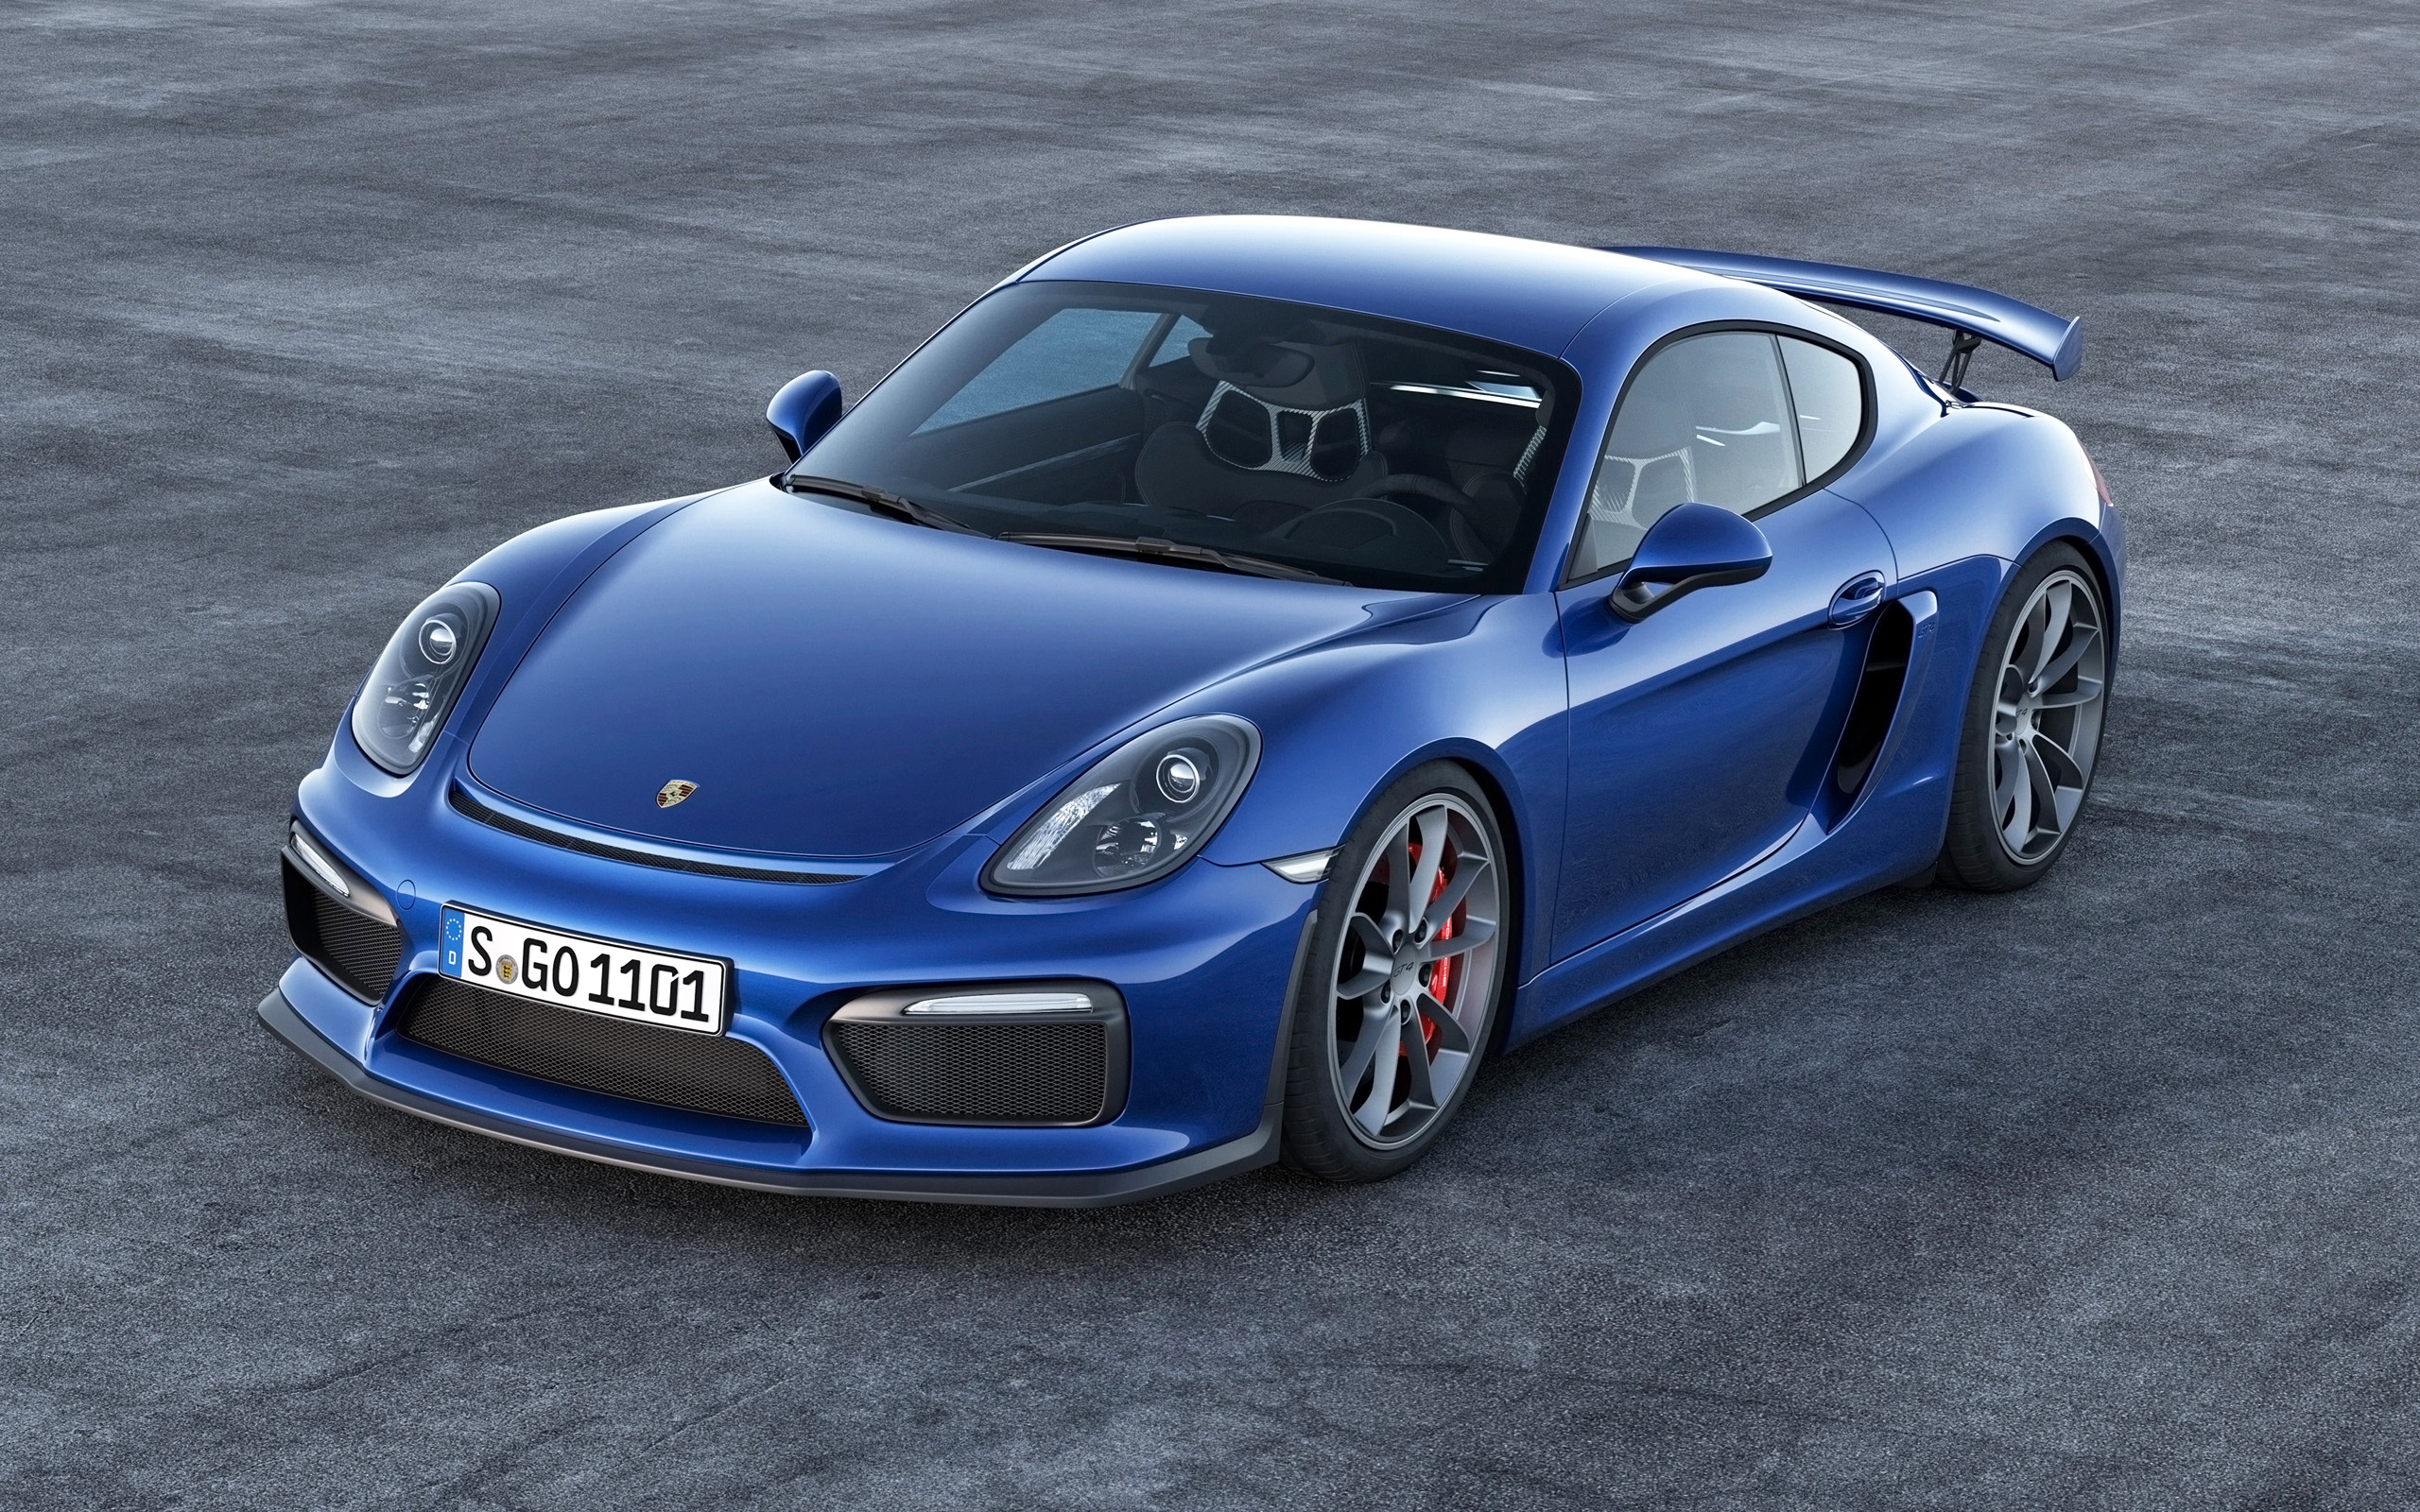 2560x1600 - Porsche Cayman Wallpapers 20